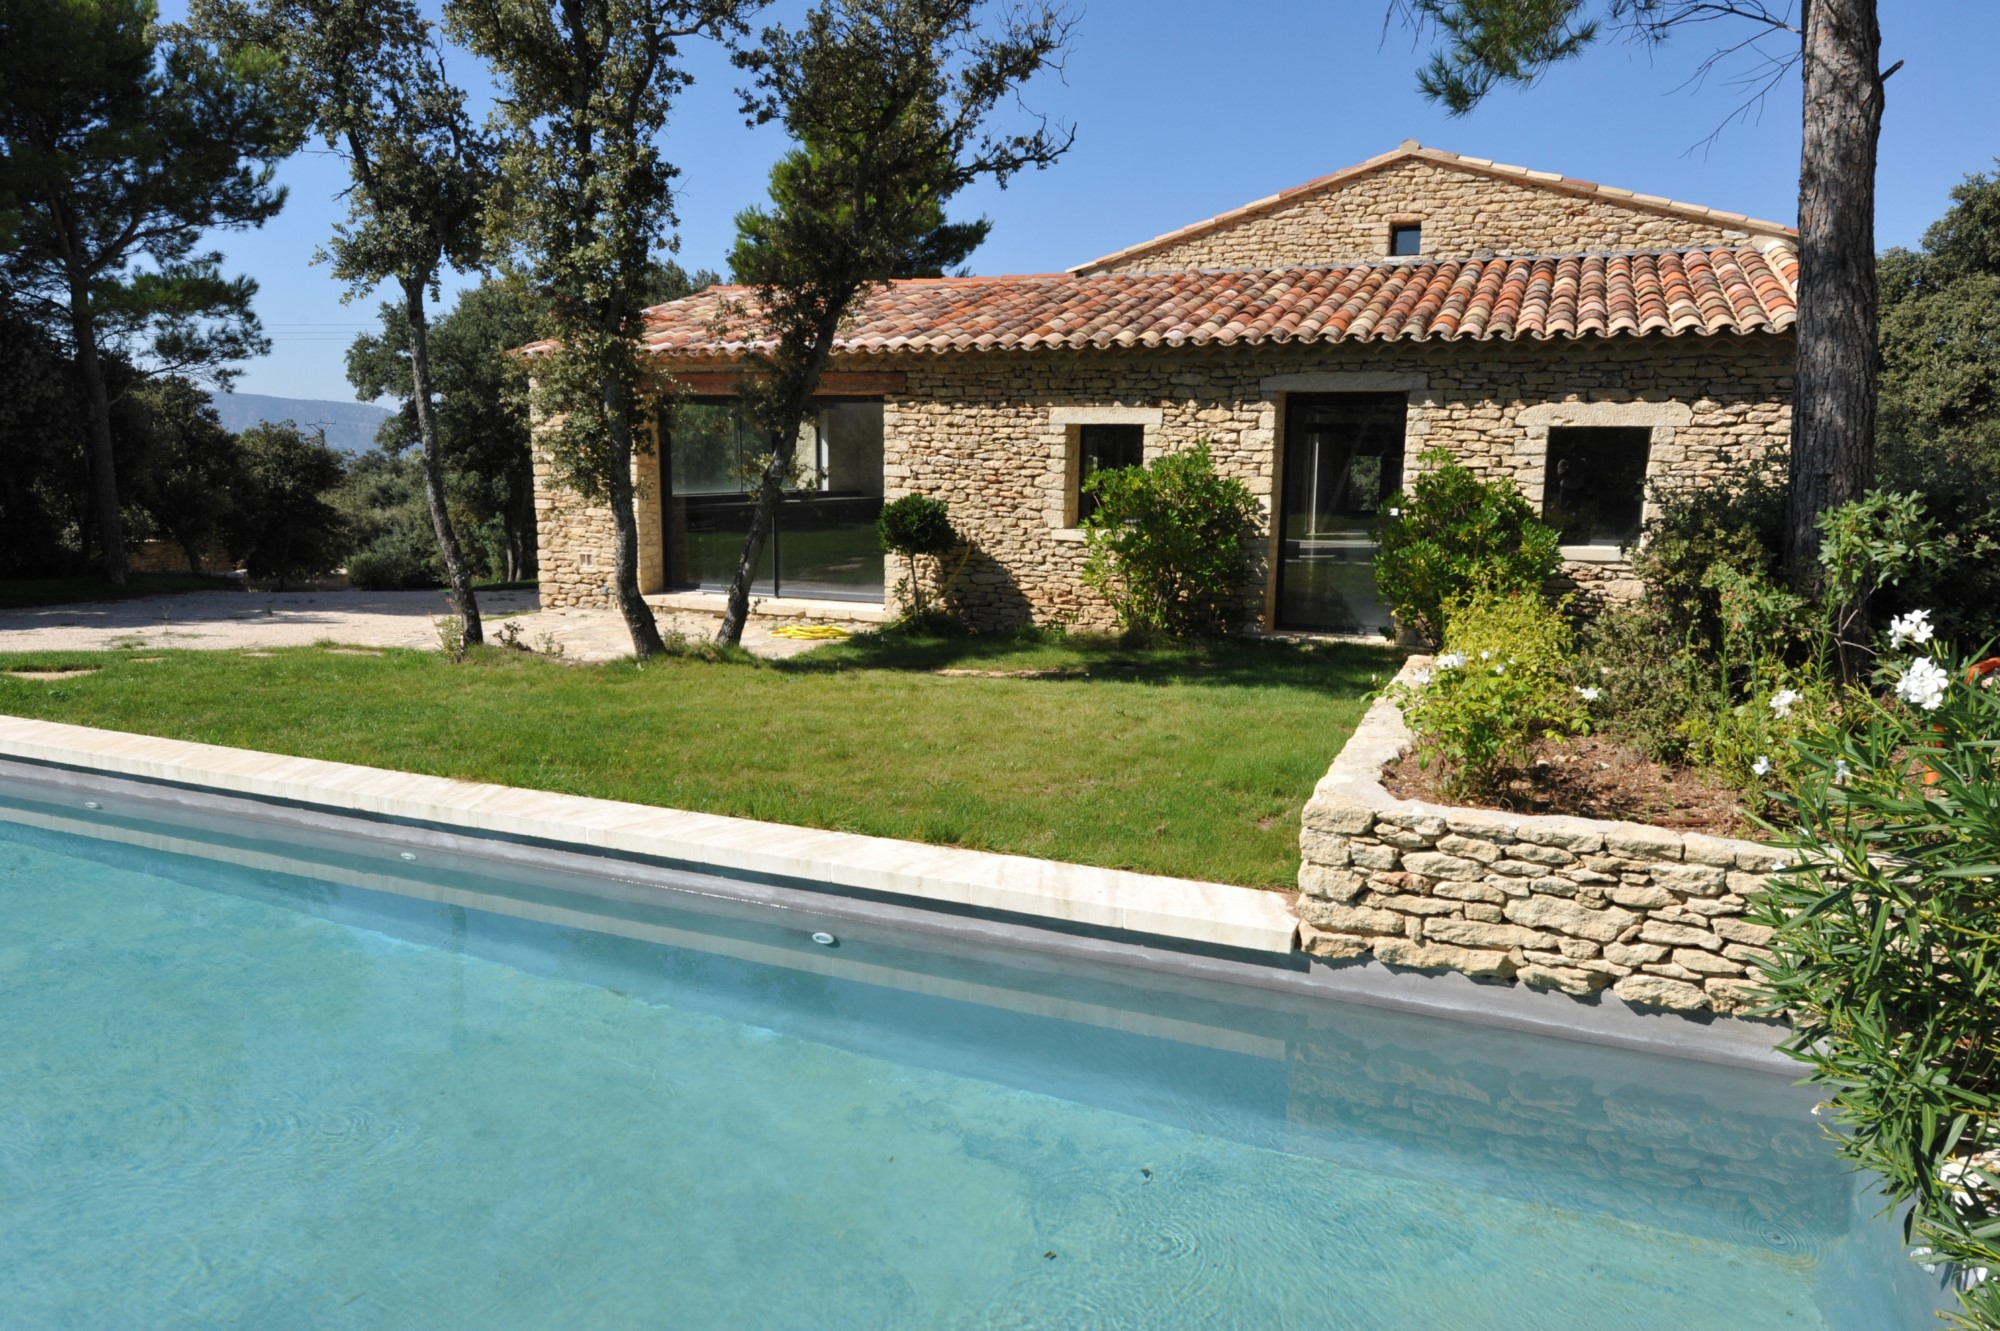 Ventes a vendre gordes maison contemporaine avec piscine for Prix maison cubique contemporaine